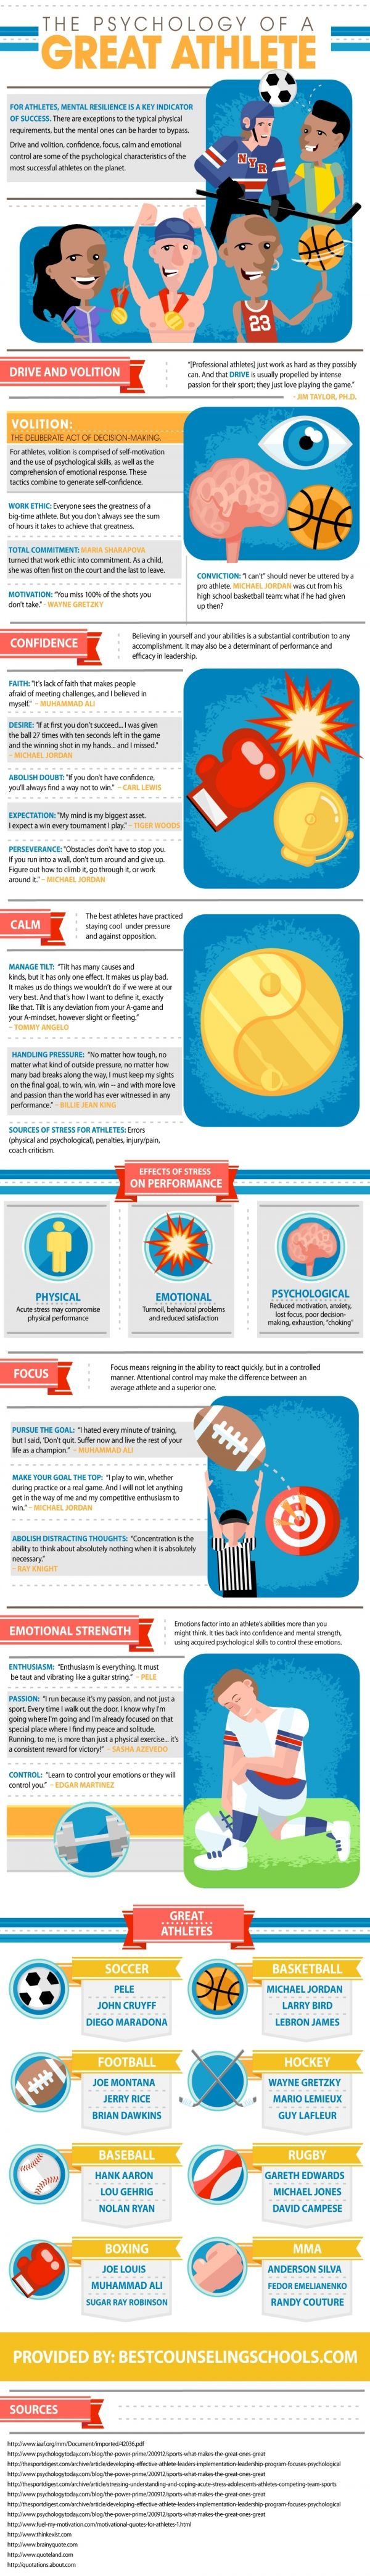 The Psychology of a Great Athlete Infographic Sports